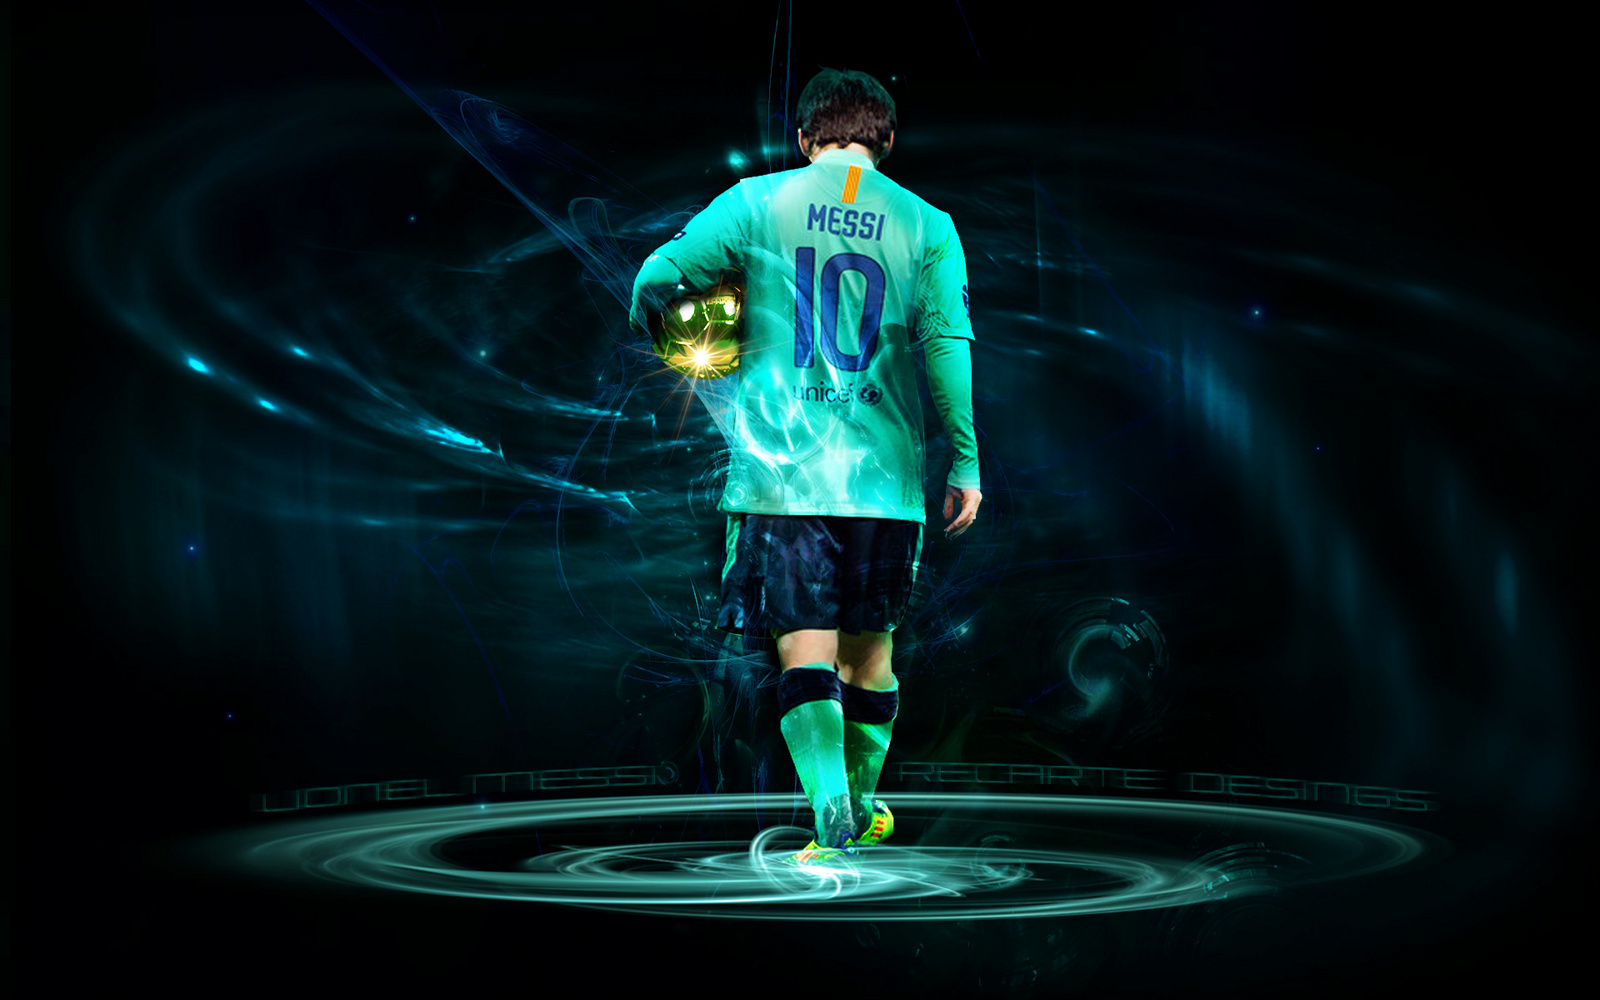 Sport Wallpapers Hd Game Images Players Desktop Images: ALL SPORTS CELEBRITIES: Lionel Messi Lattest HD Wallpapers